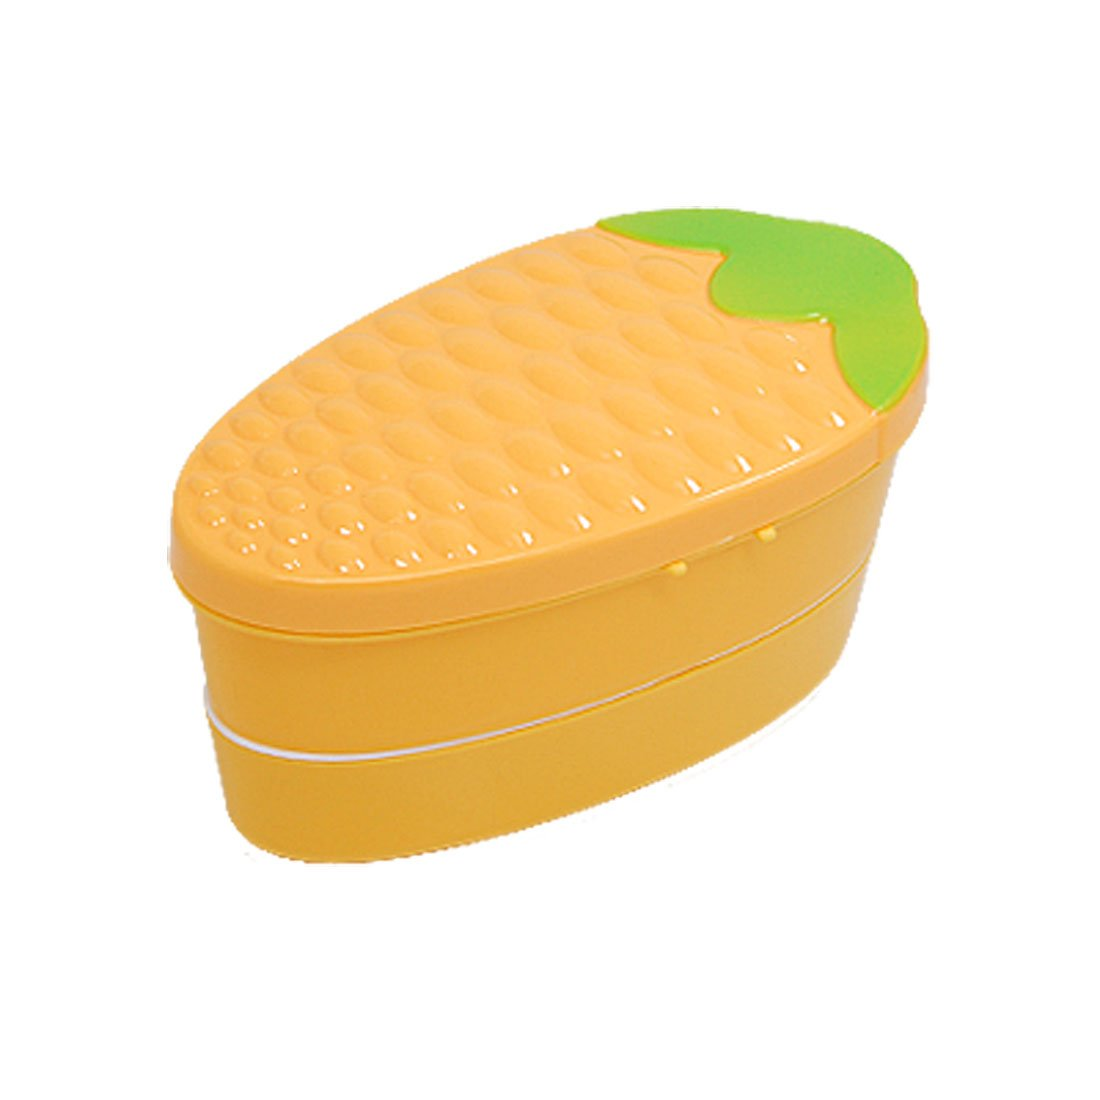 Mealie Corn Shape Double Layer Lunch Pastry Box w Spoon aosbos fashion portable insulated canvas lunch bag thermal food picnic lunch bags for women kids men cooler lunch box bag tote